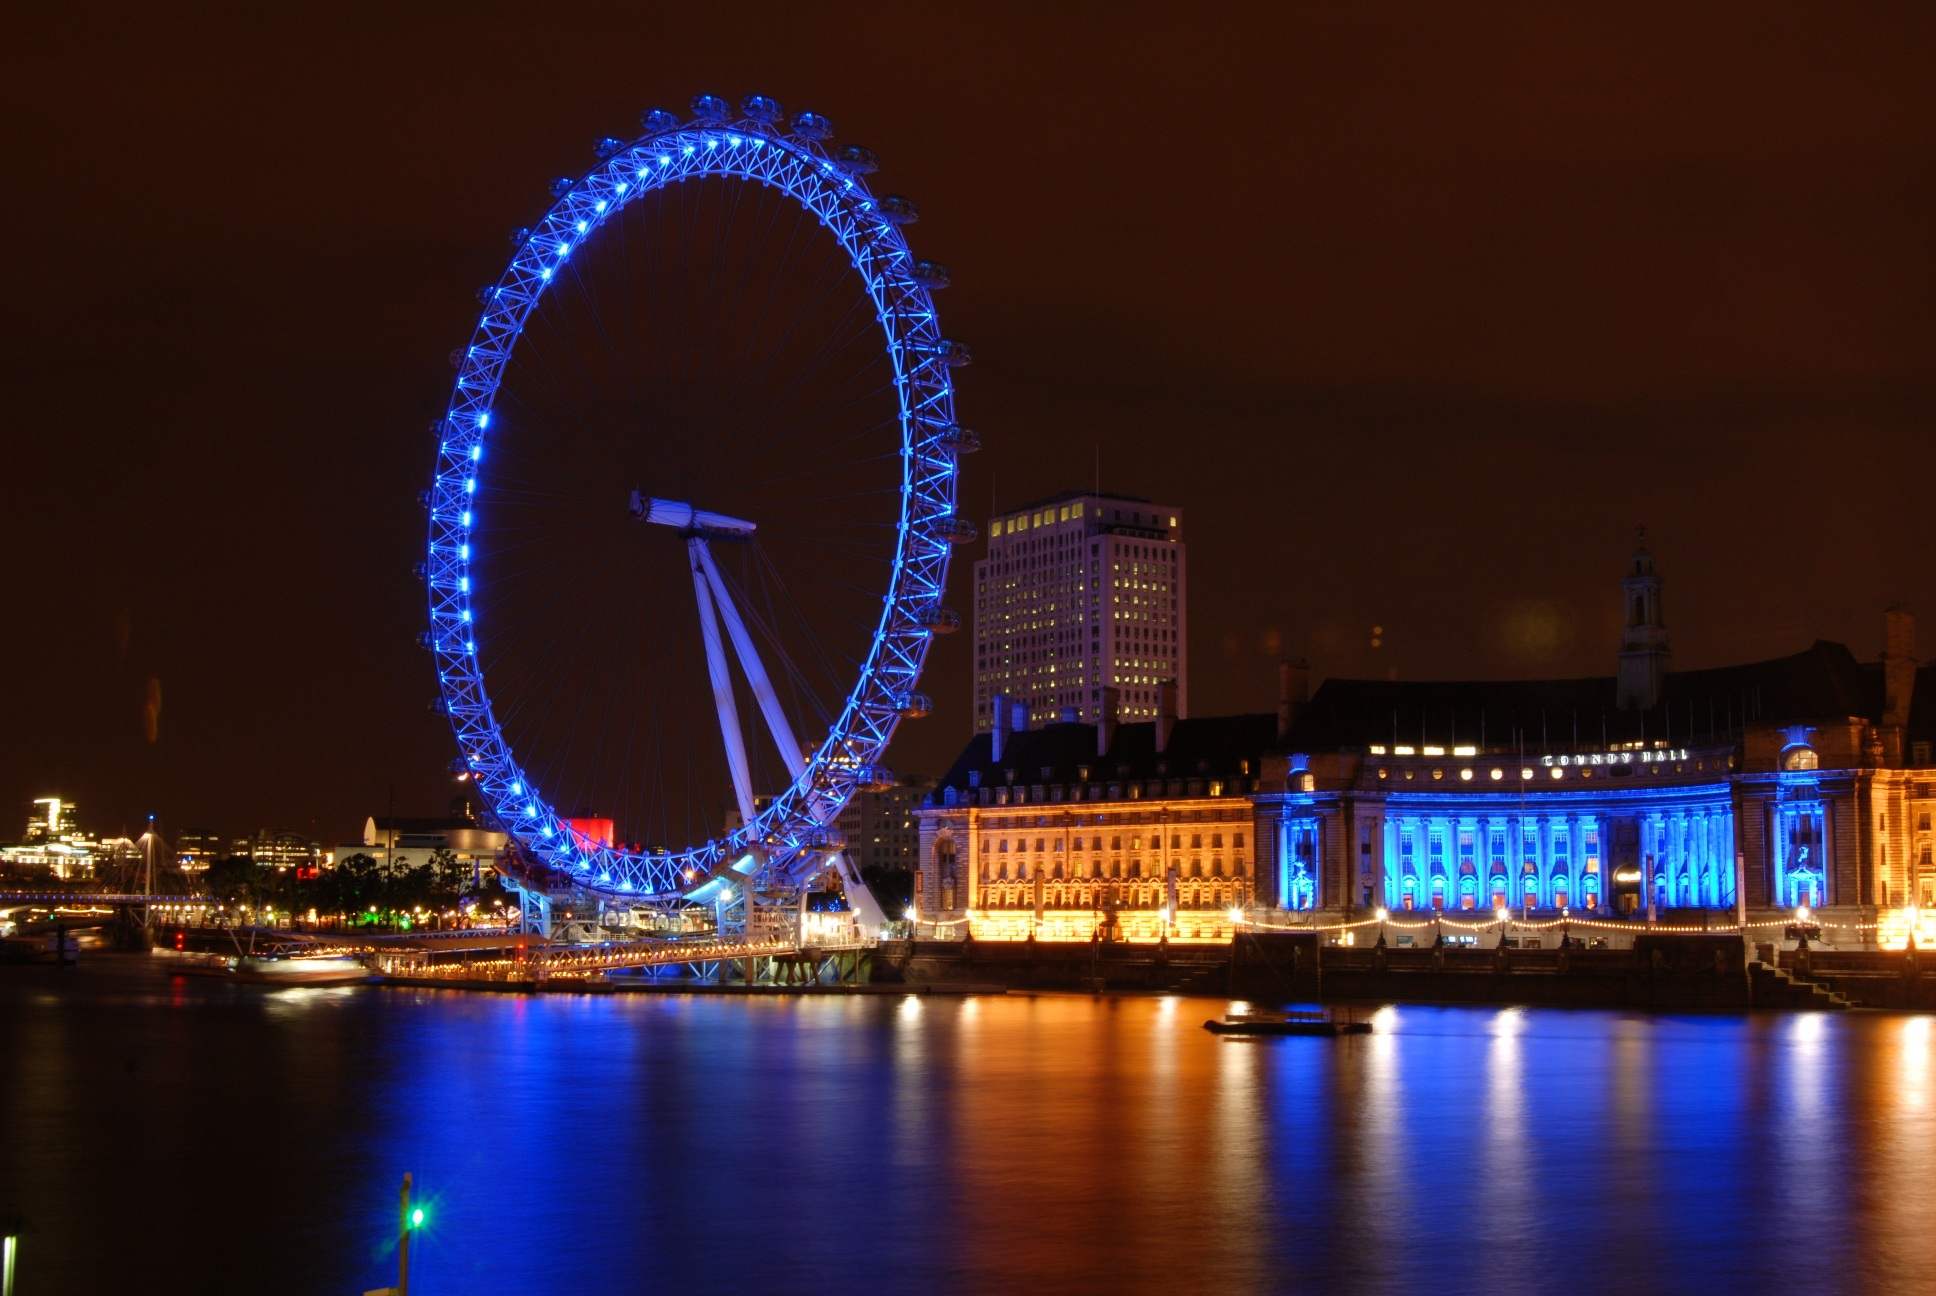 Skyline Car Wallpaper Hd London Eye The Best Place To See The Beauty Of The City